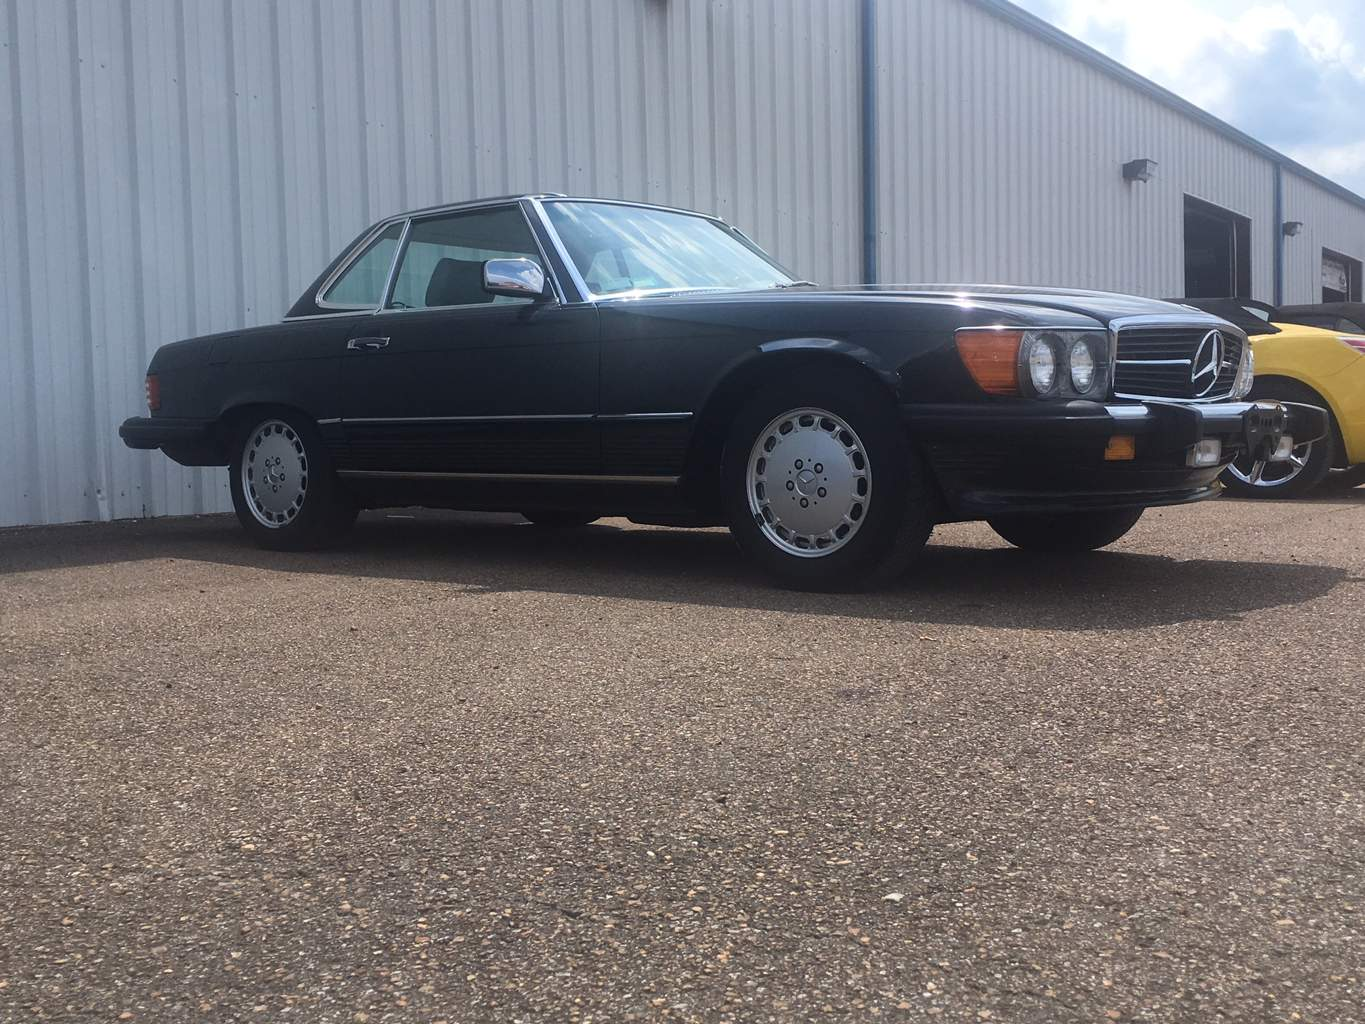 3rd Image of a 1986 MERCEDES-BENZ 560 560SL